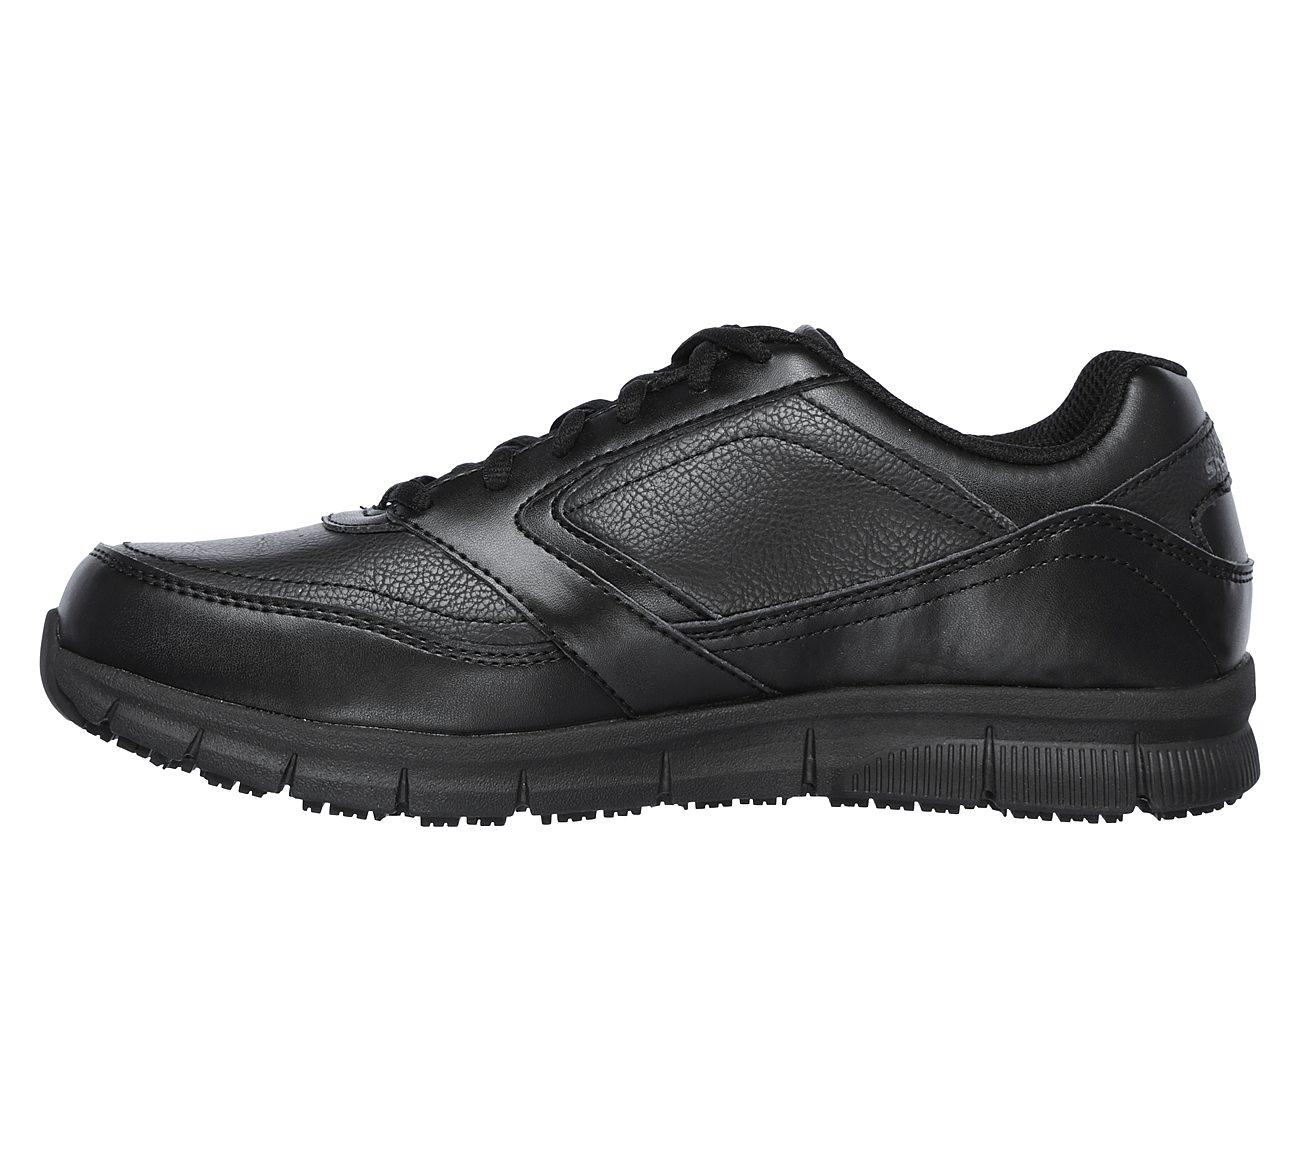 5c1b63c6f963 Buy SKECHERS Work Relaxed Fit  Nampa SR Work Shoes only  48.00